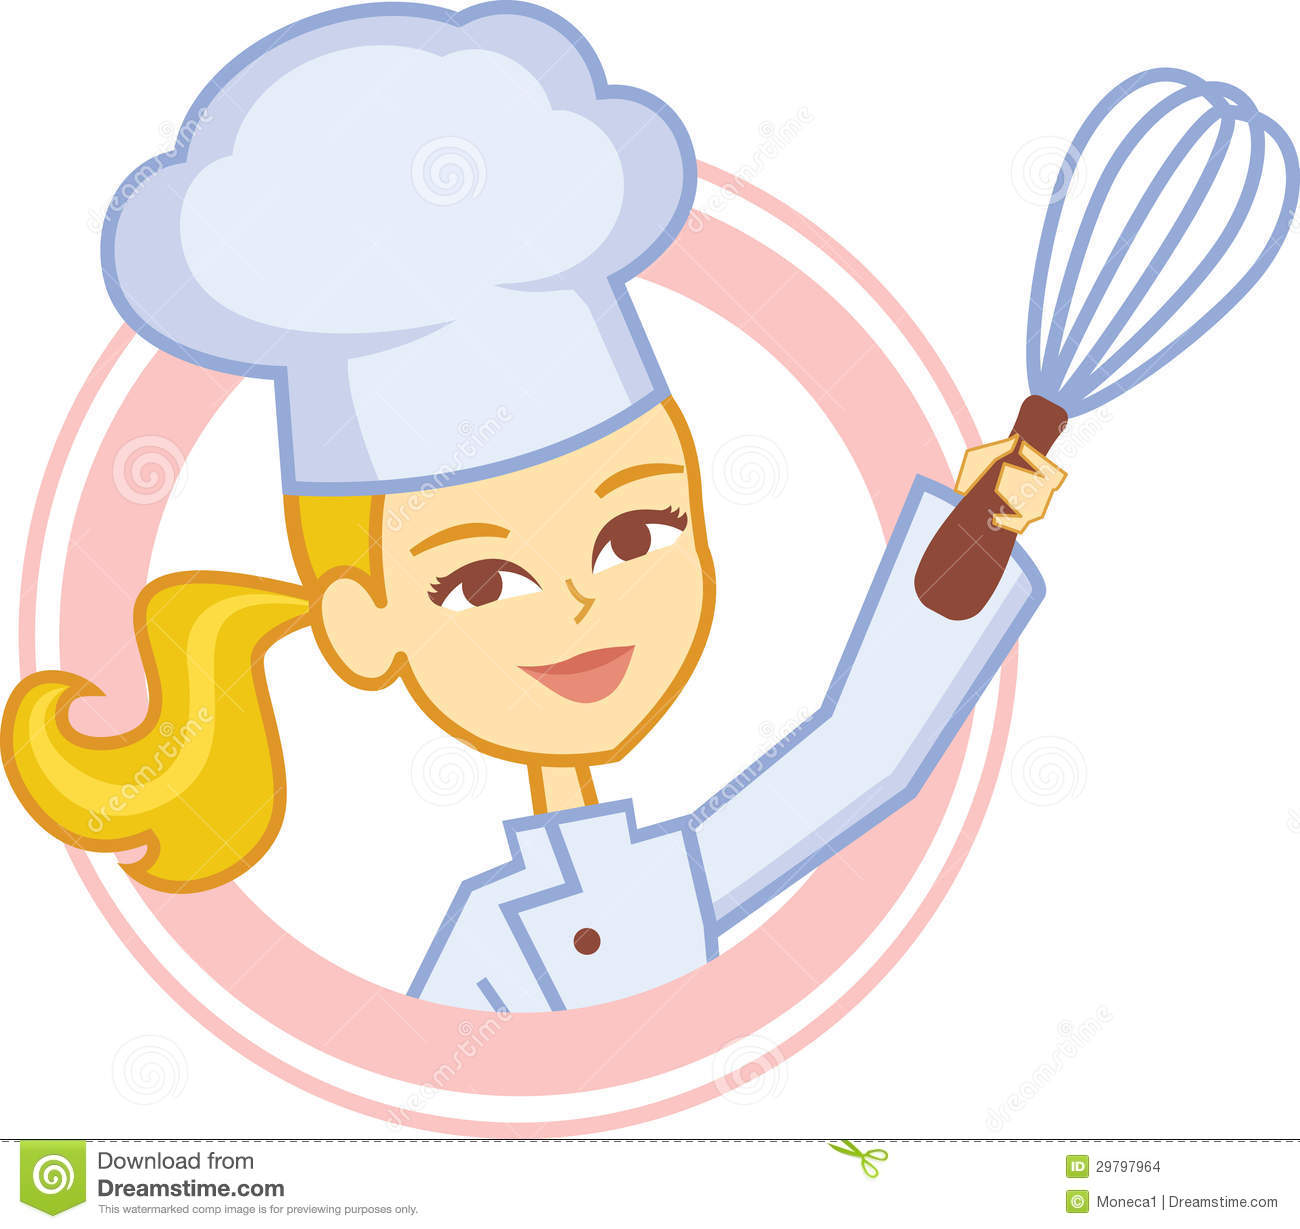 Design With A Blonde Cartoon Girl Baker Wearing Chef Apron And Chef